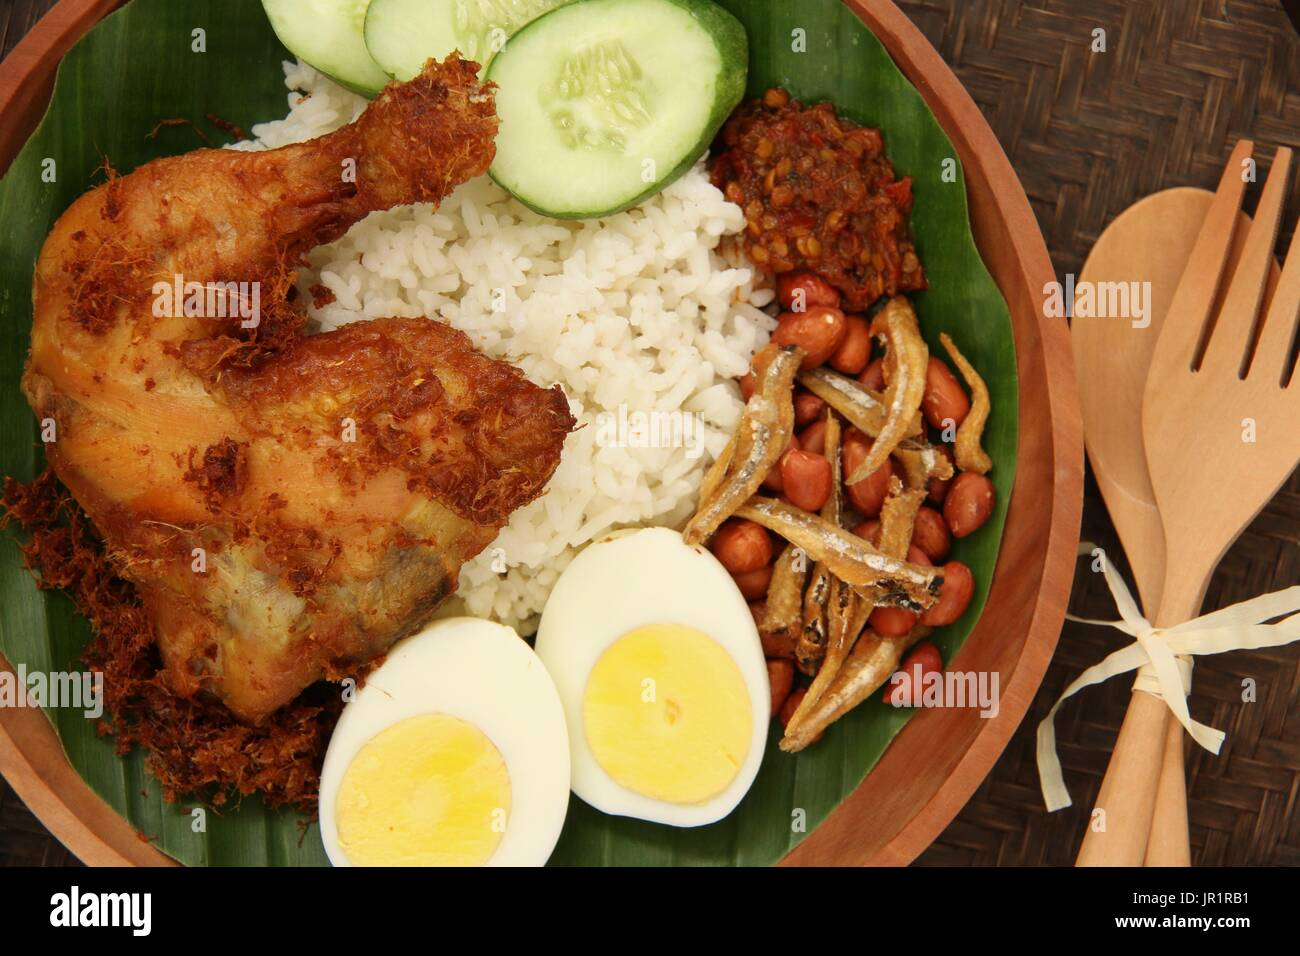 Nasi Lemak, Malaysian Savory Rice Dish with Fried Chicken, Egg, Peanuts, Anchovies, and Chili Paste - Stock Image